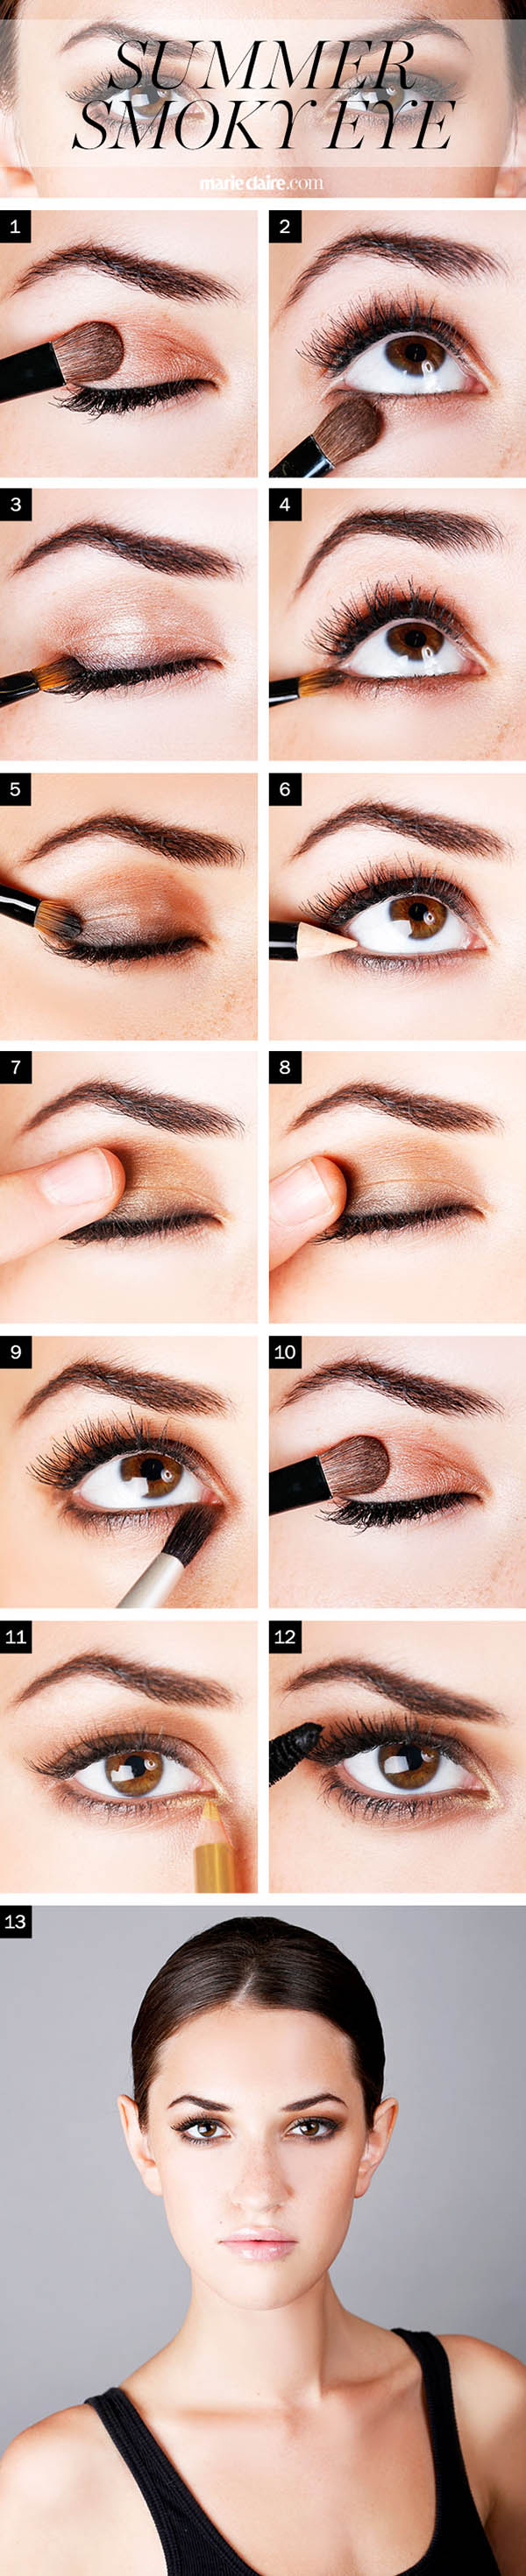 Summer Smoky Eye How To, Copyright www.marieclaire.com